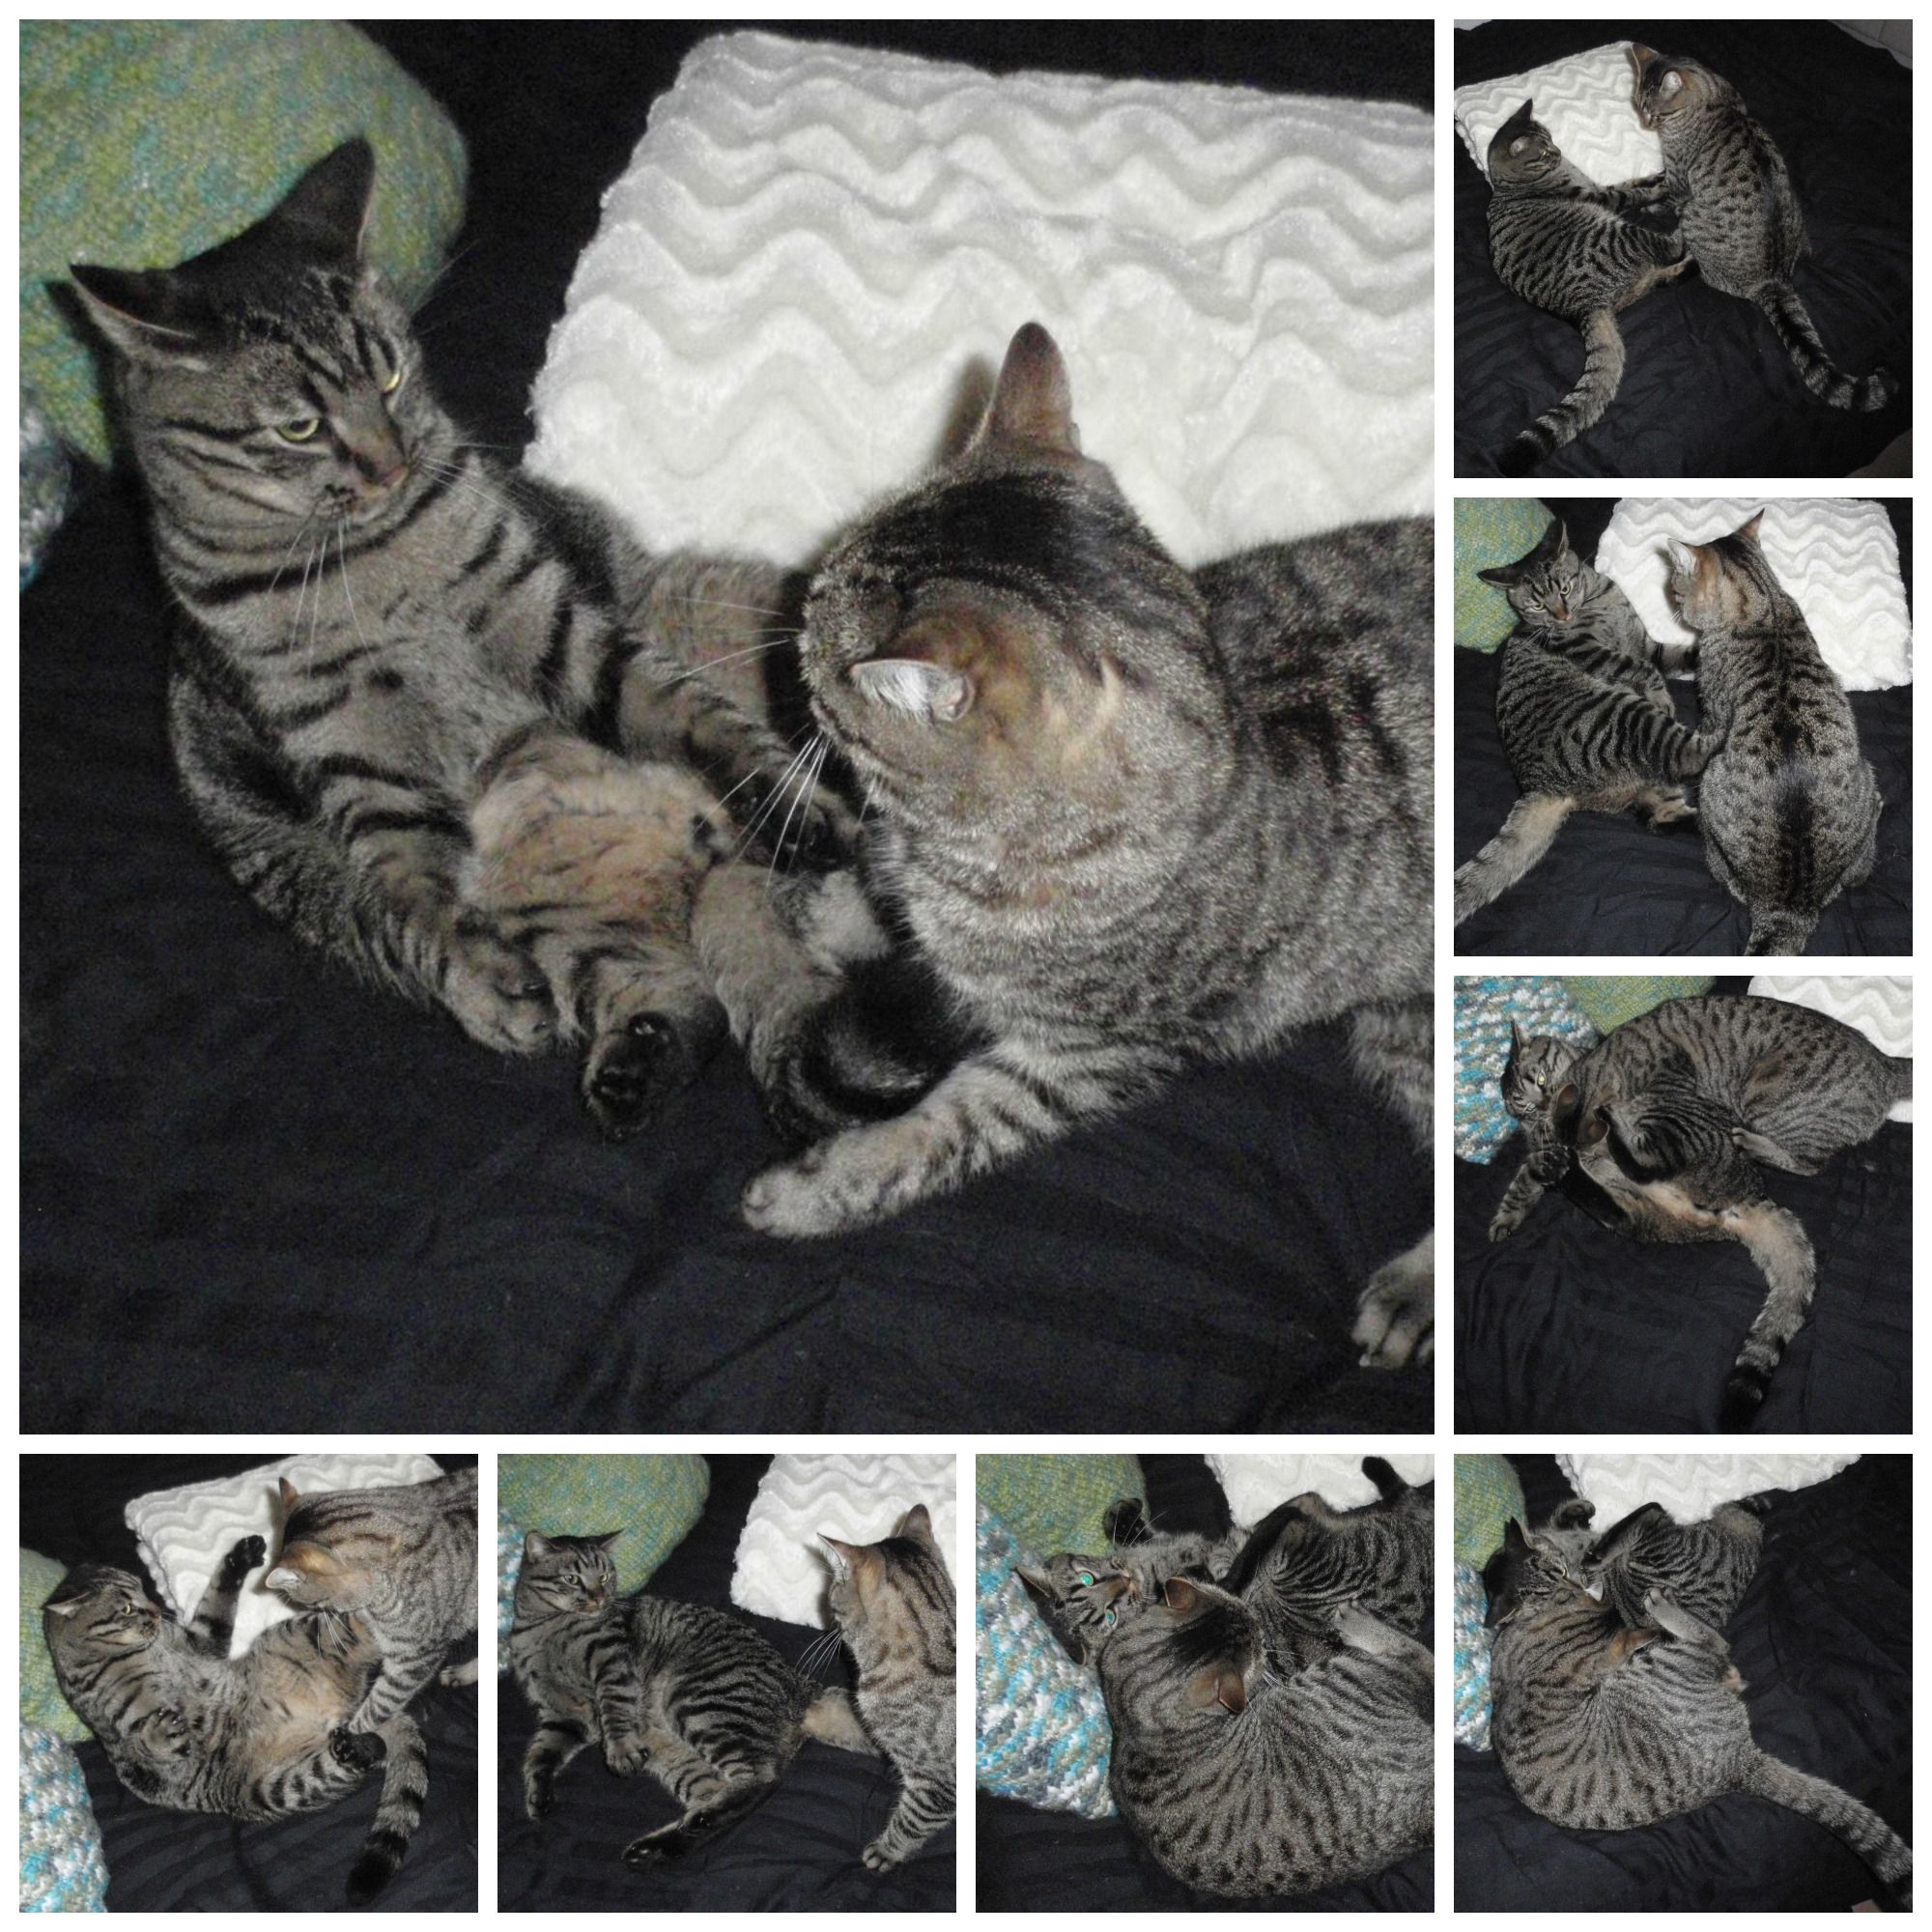 Bros. Felix (l) and Quintus (r) in a typical cat fight...Quintus being the aggressor...as usual... ;)